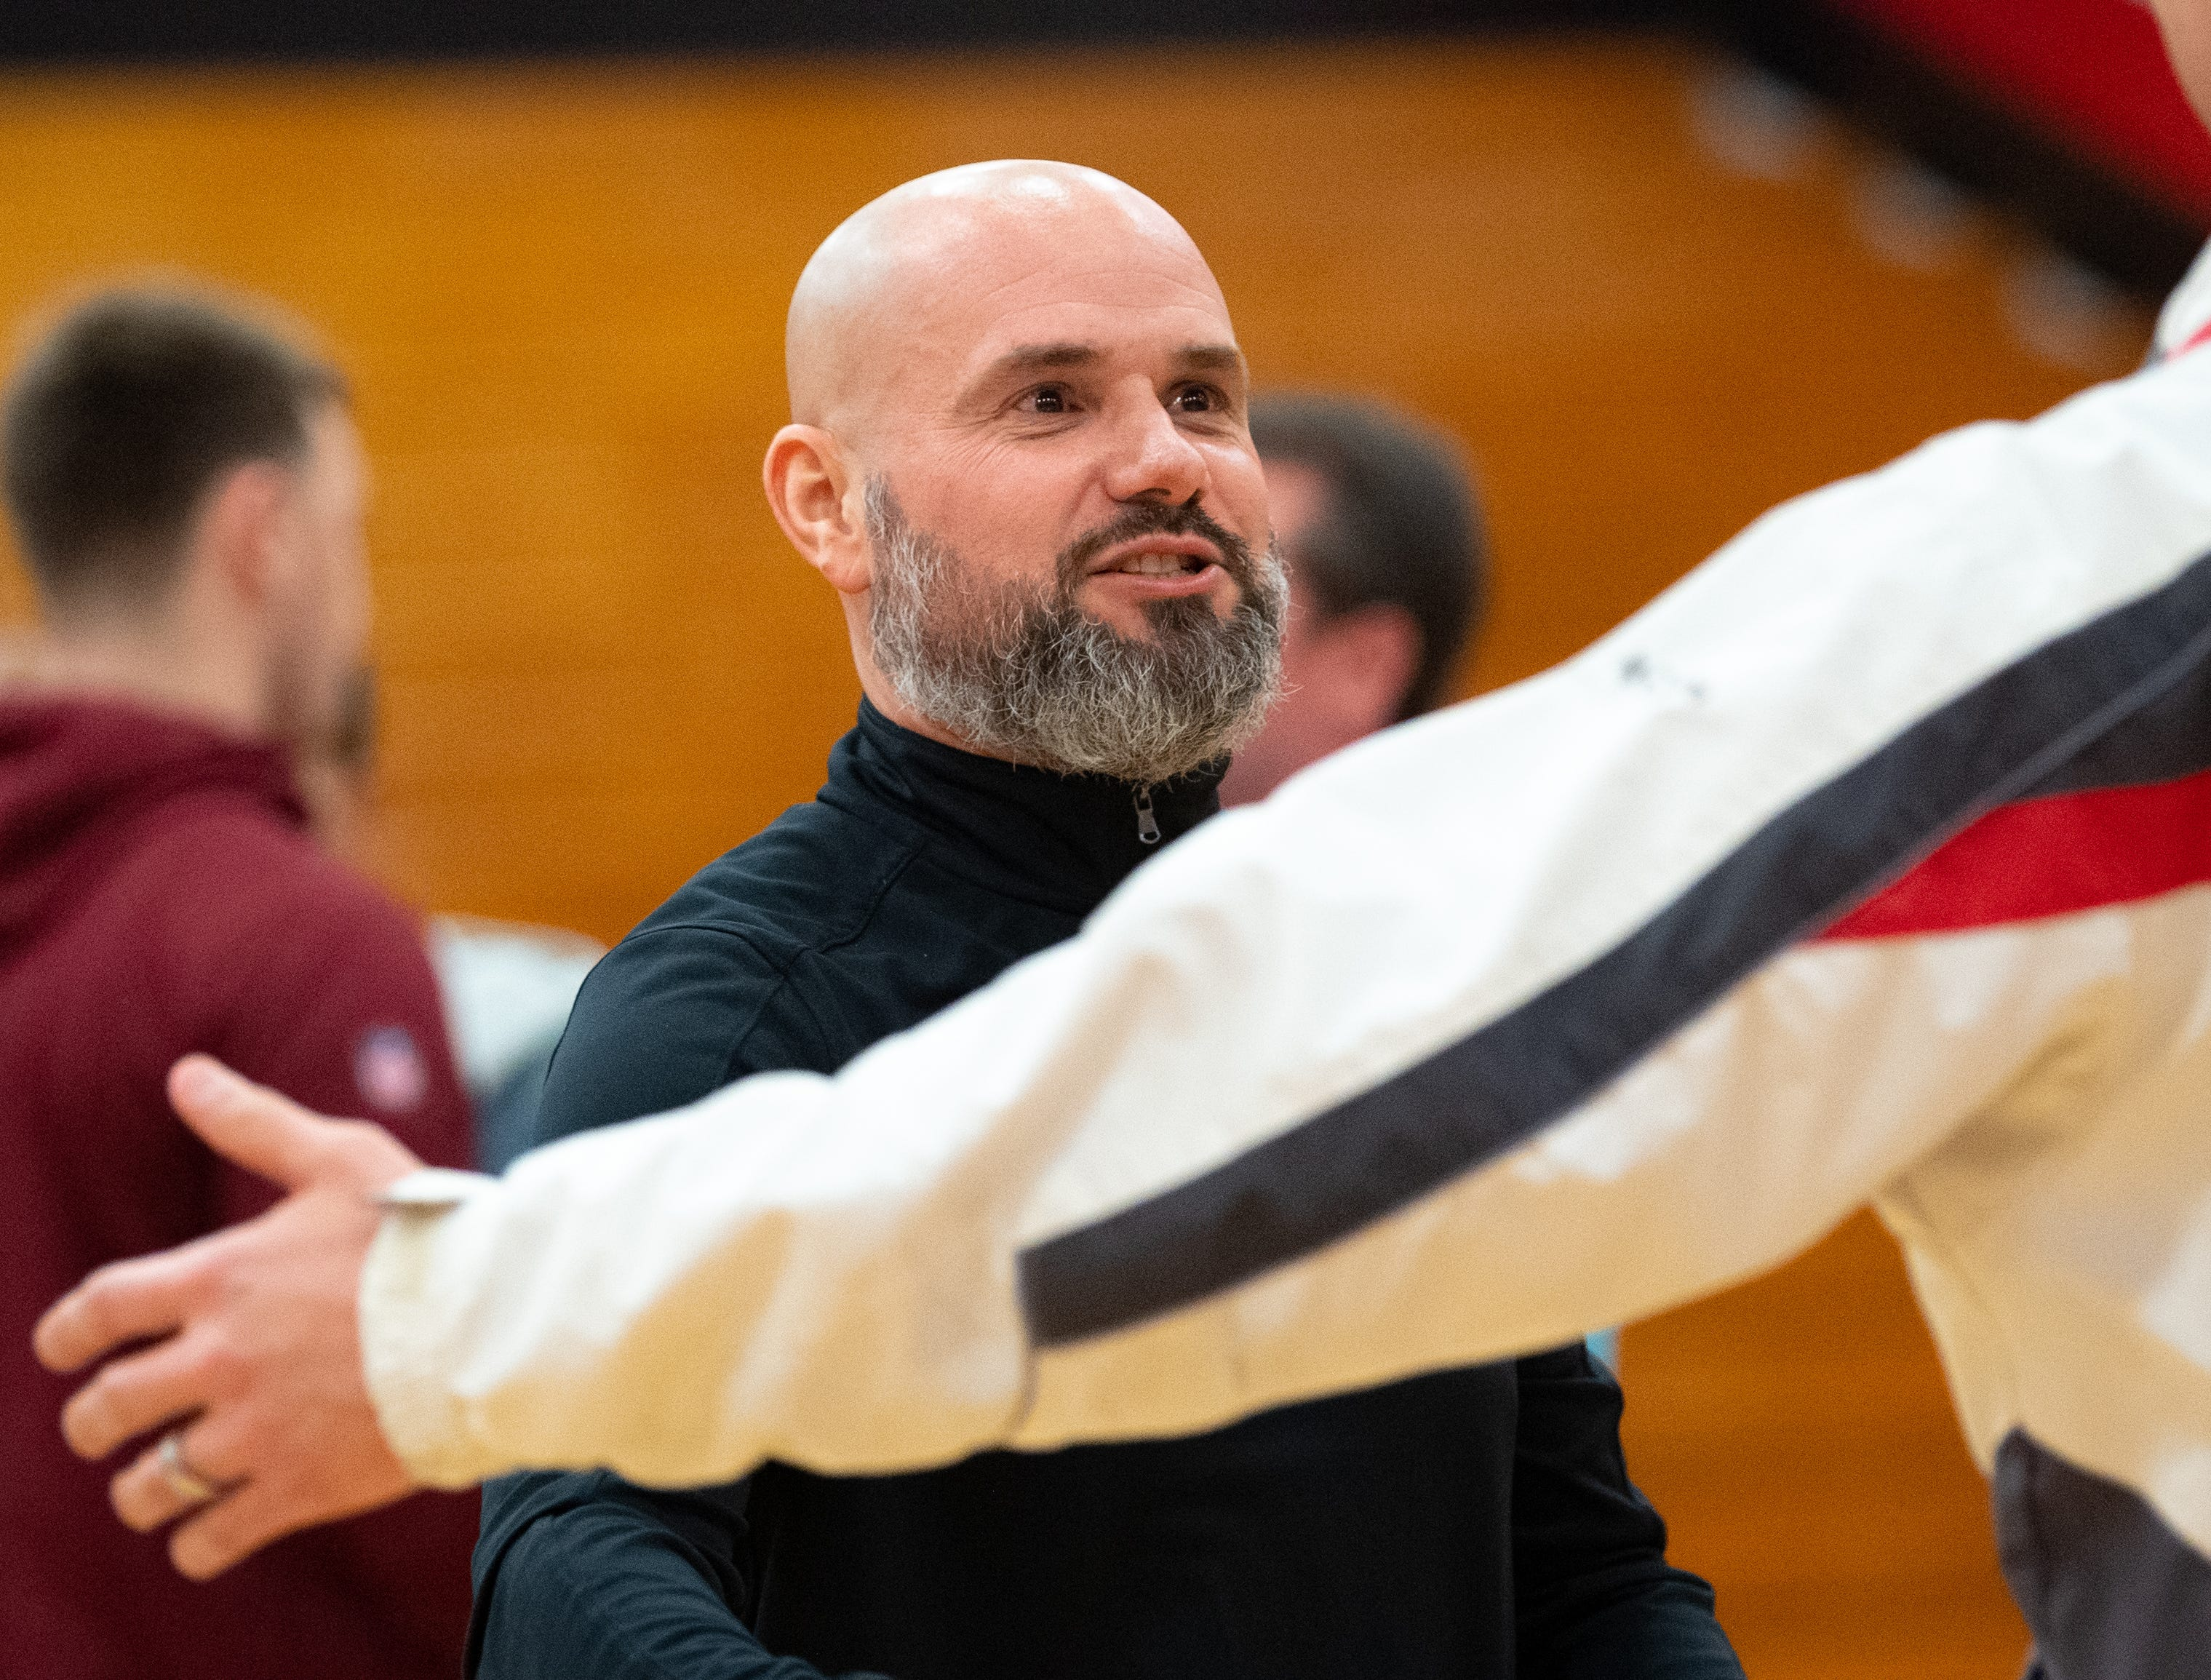 Dover head coach Brian Schmoyer goes to hug all of the players he coached over the years, February 1, 2019.